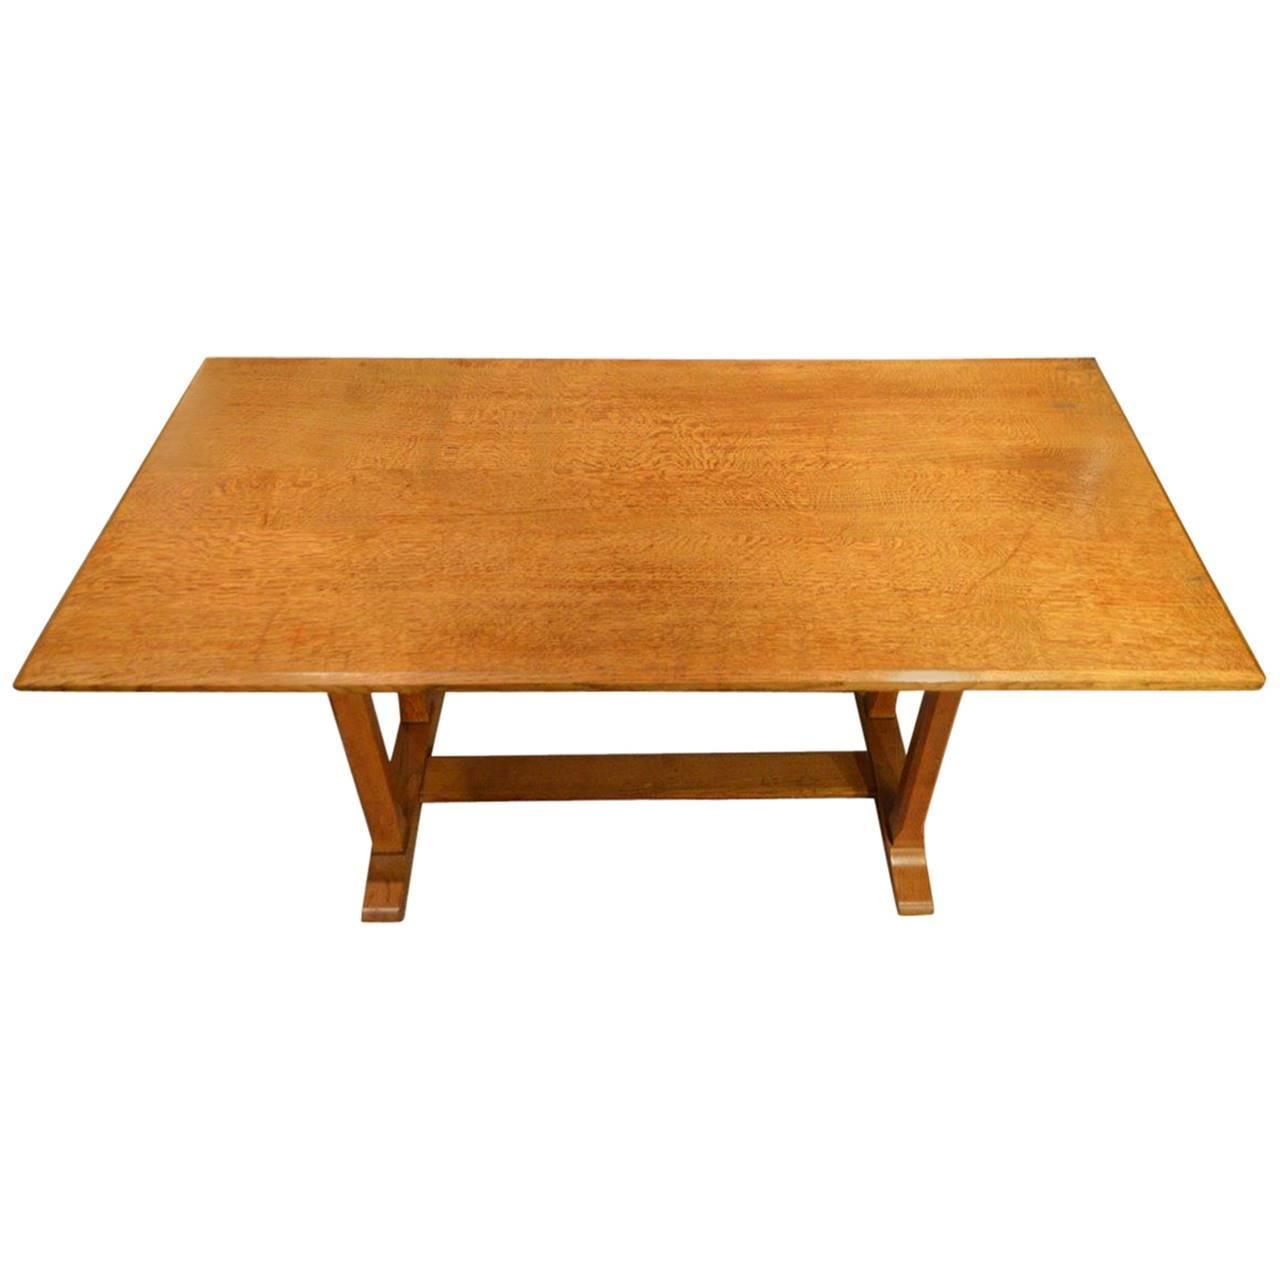 Gordon Russell Coffee Table Oak Arts And Crafts Period Refectory Table By Gordon Russell At